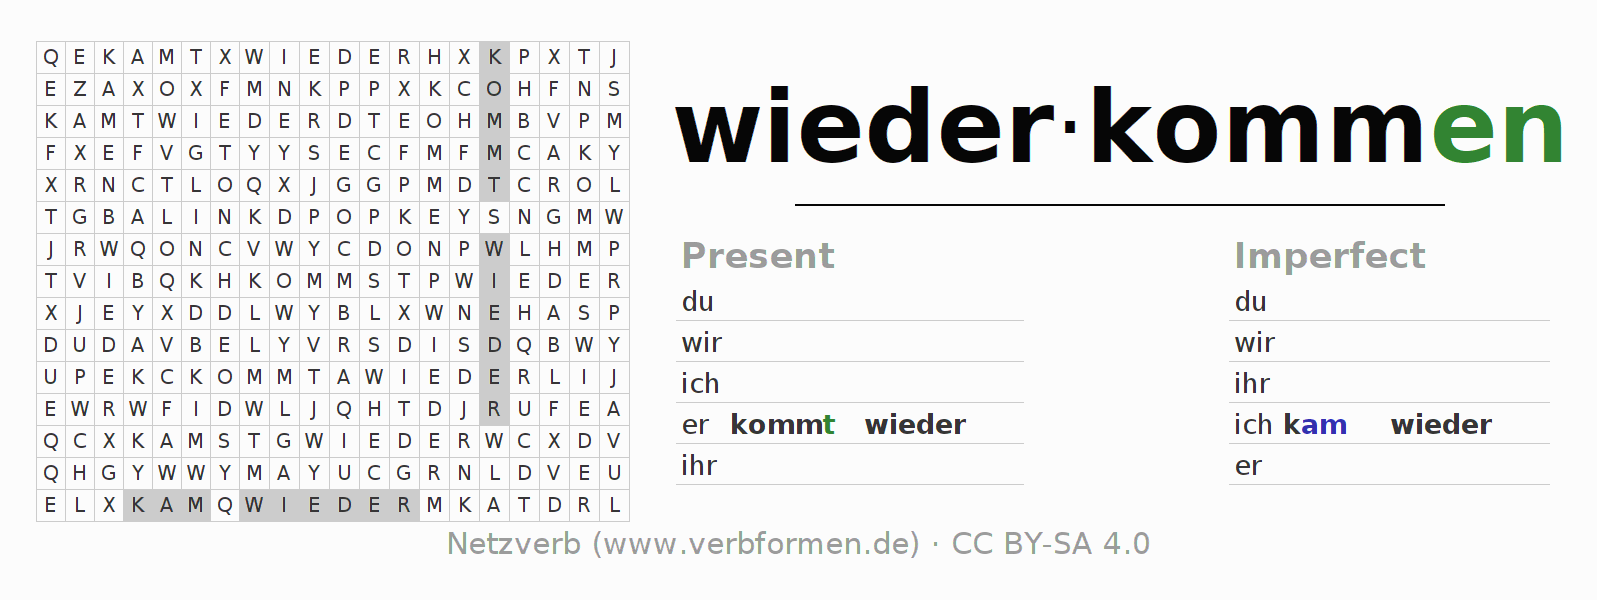 Word search puzzle for the conjugation of the verb wiederkommen